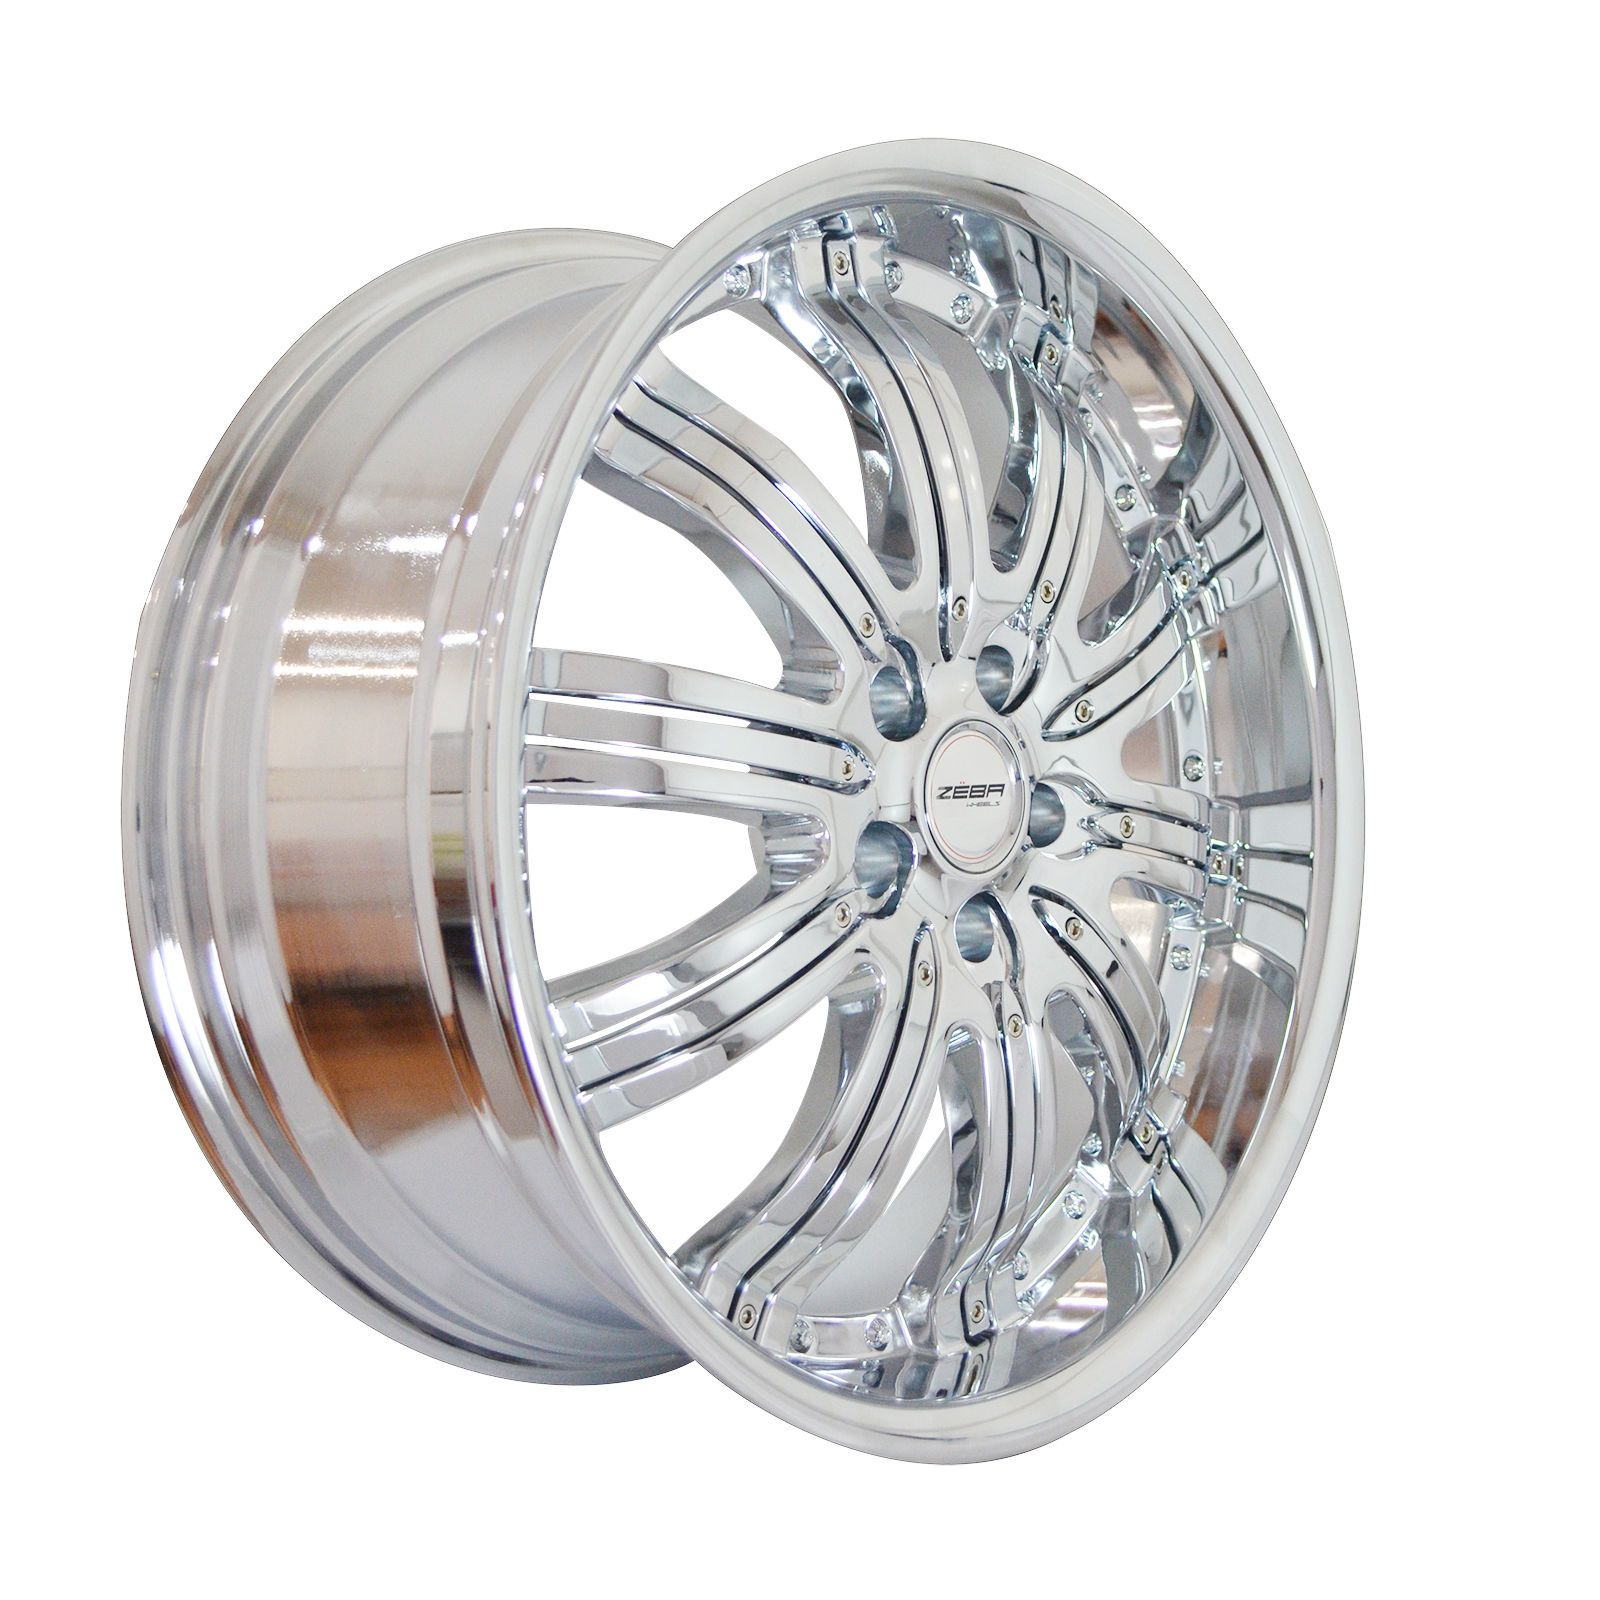 4 GWG Wheels 20 inch Chrome Inserts Rims fits JEEP CHEROKEE LIMITED